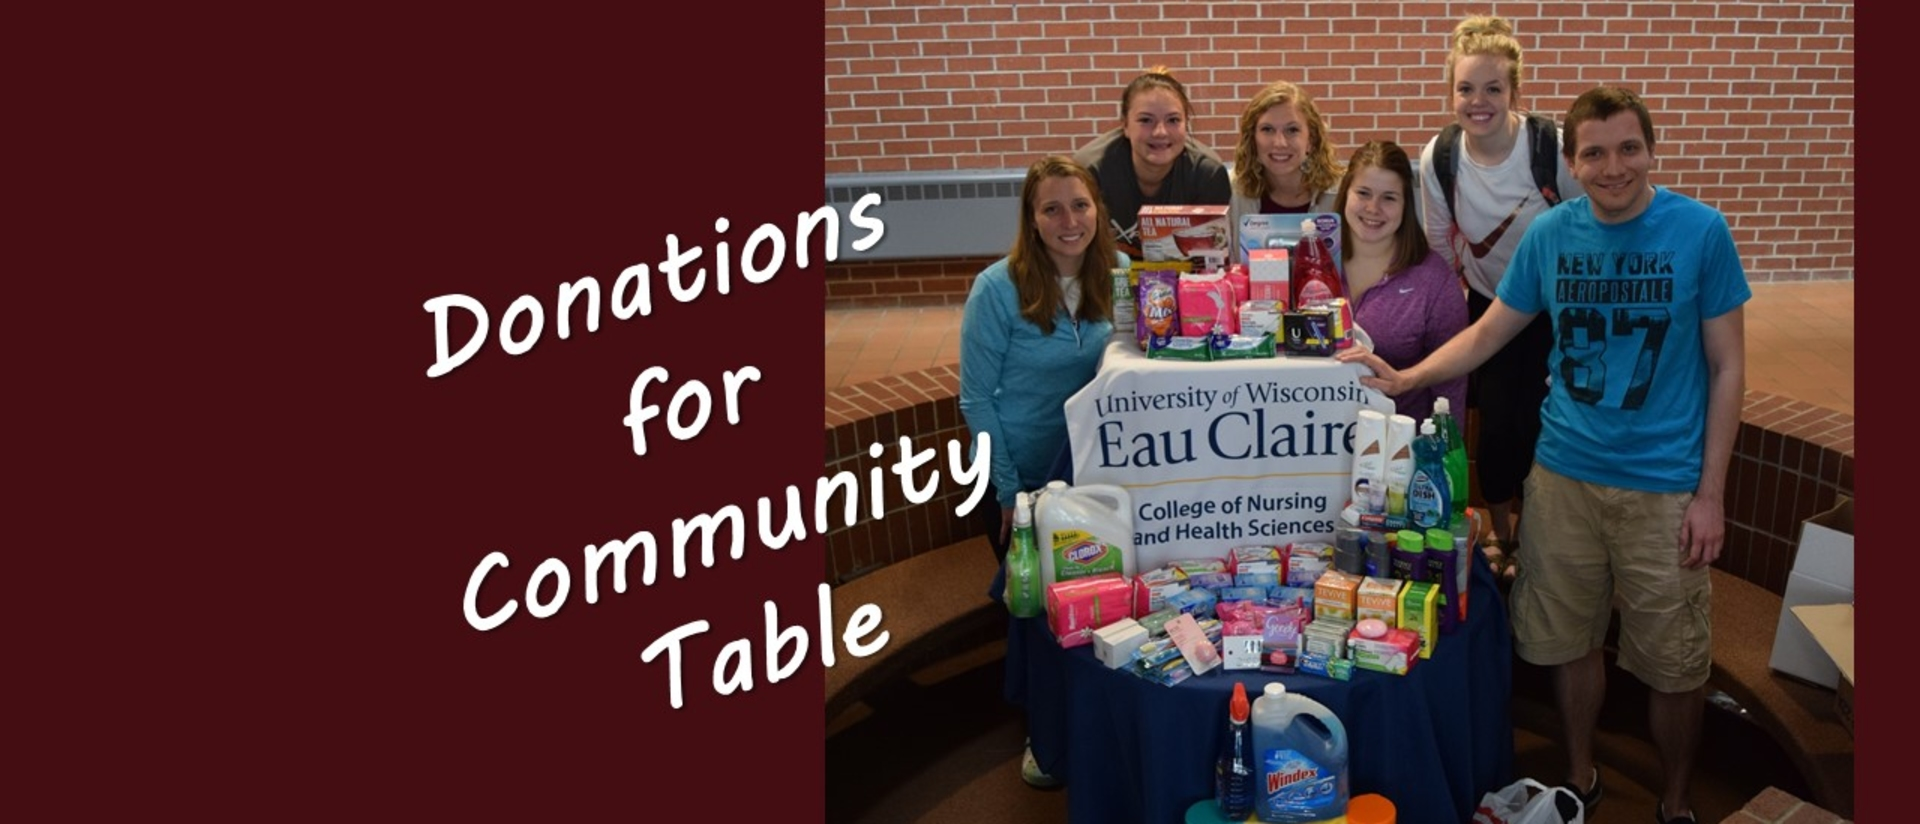 UW-Eau Claire nurses donate to Community Table